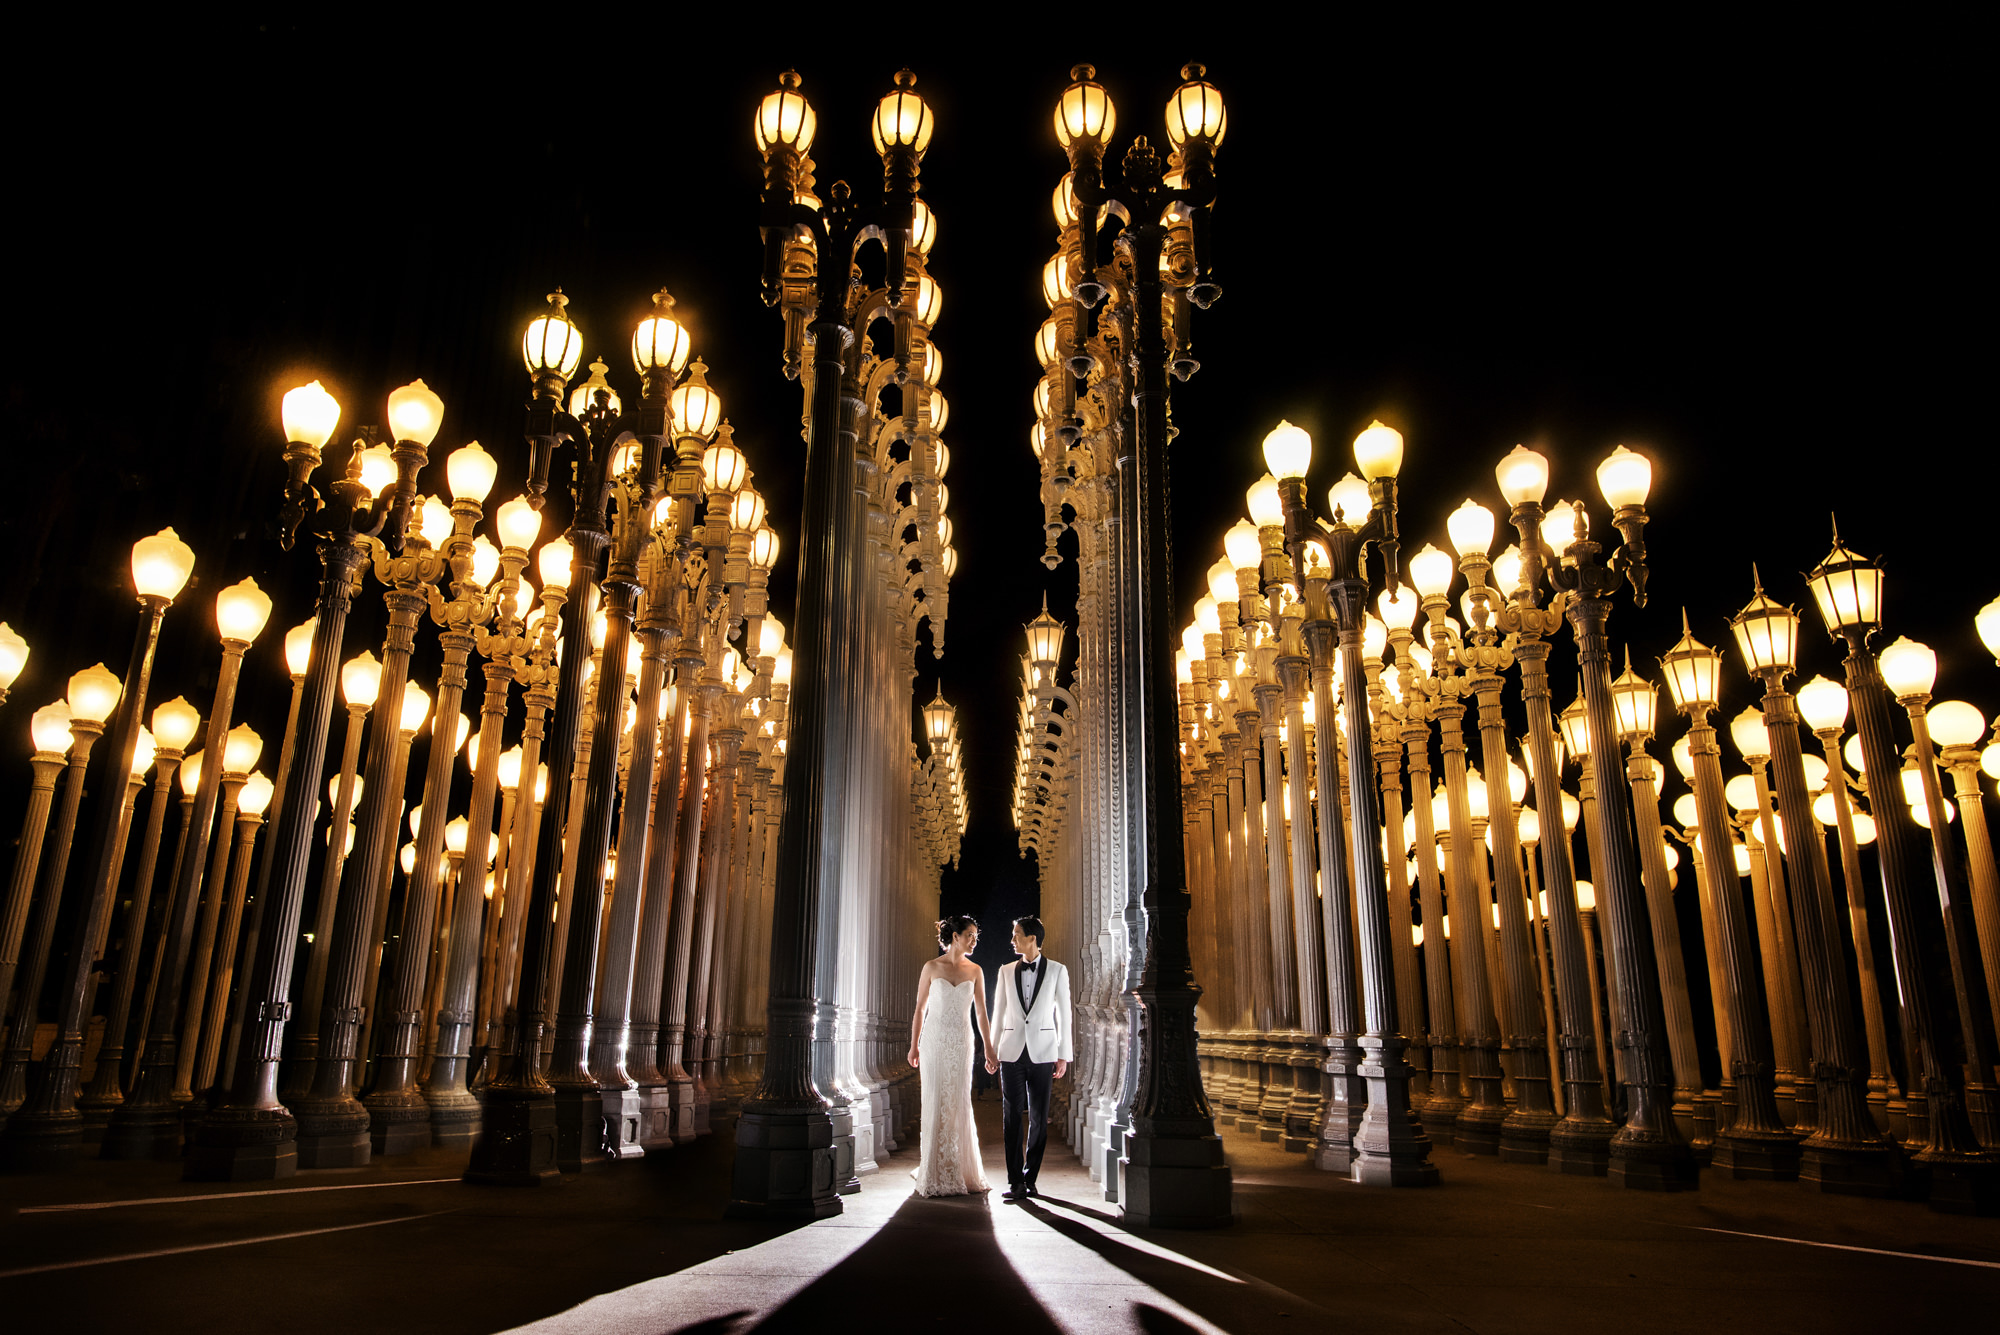 Couple in columns of gaslight lanterns - photo by Look Fotographica